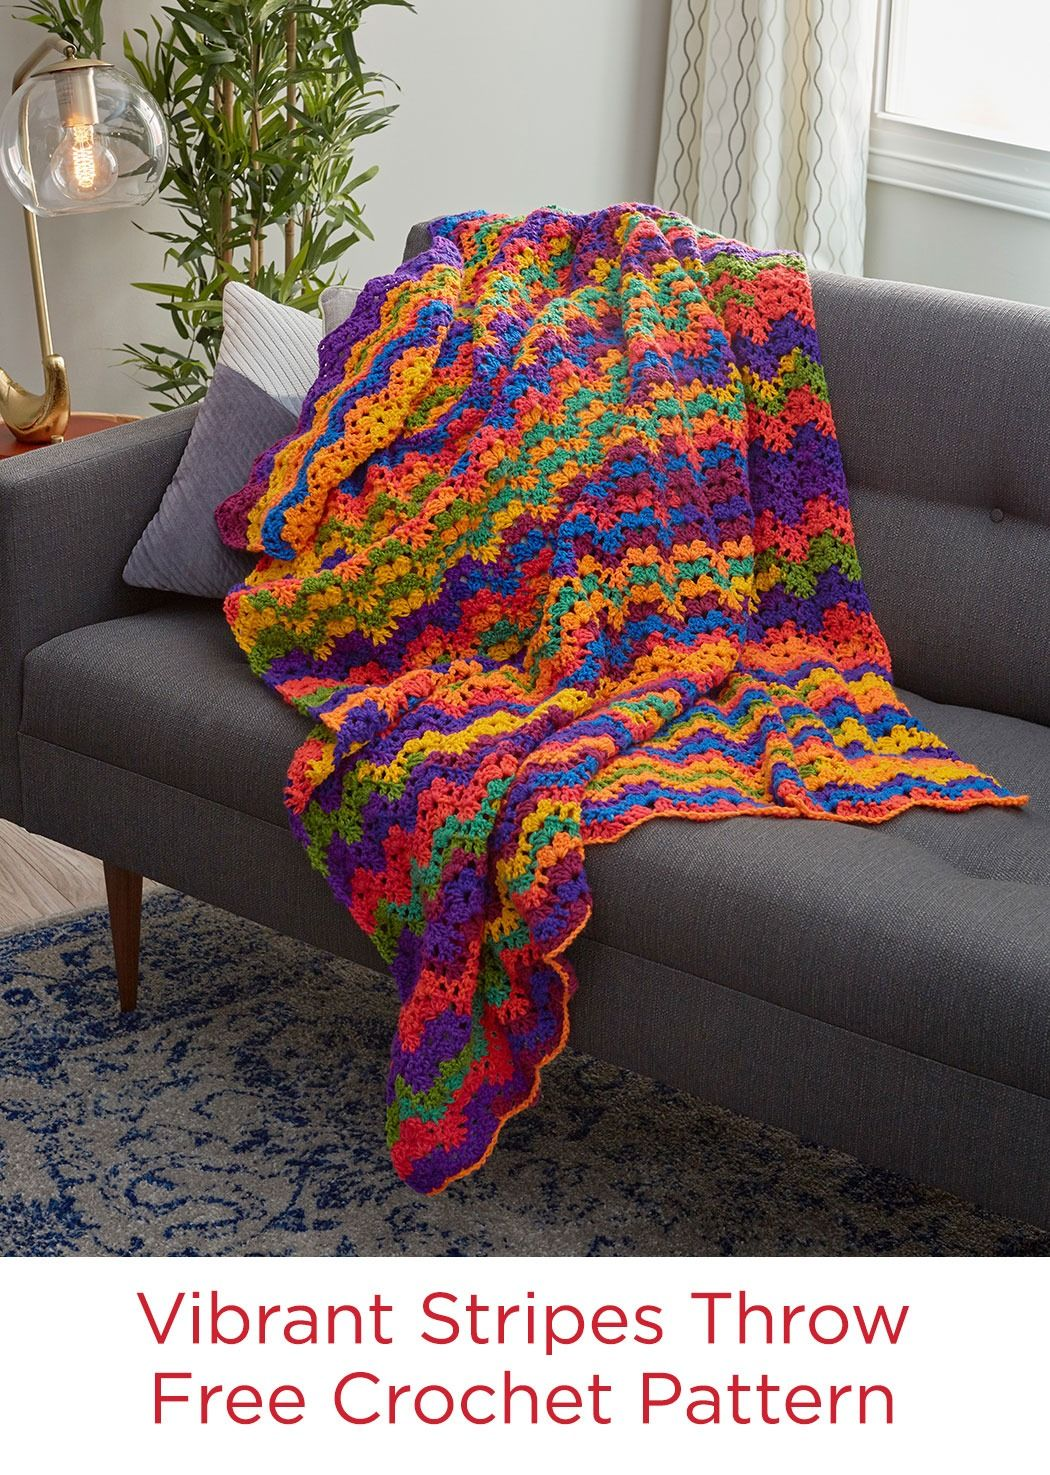 Vibrant stripes throw free crochet pattern in red heart super vibrant stripes throw free crochet pattern in red heart super saver stripes yarn you bankloansurffo Choice Image